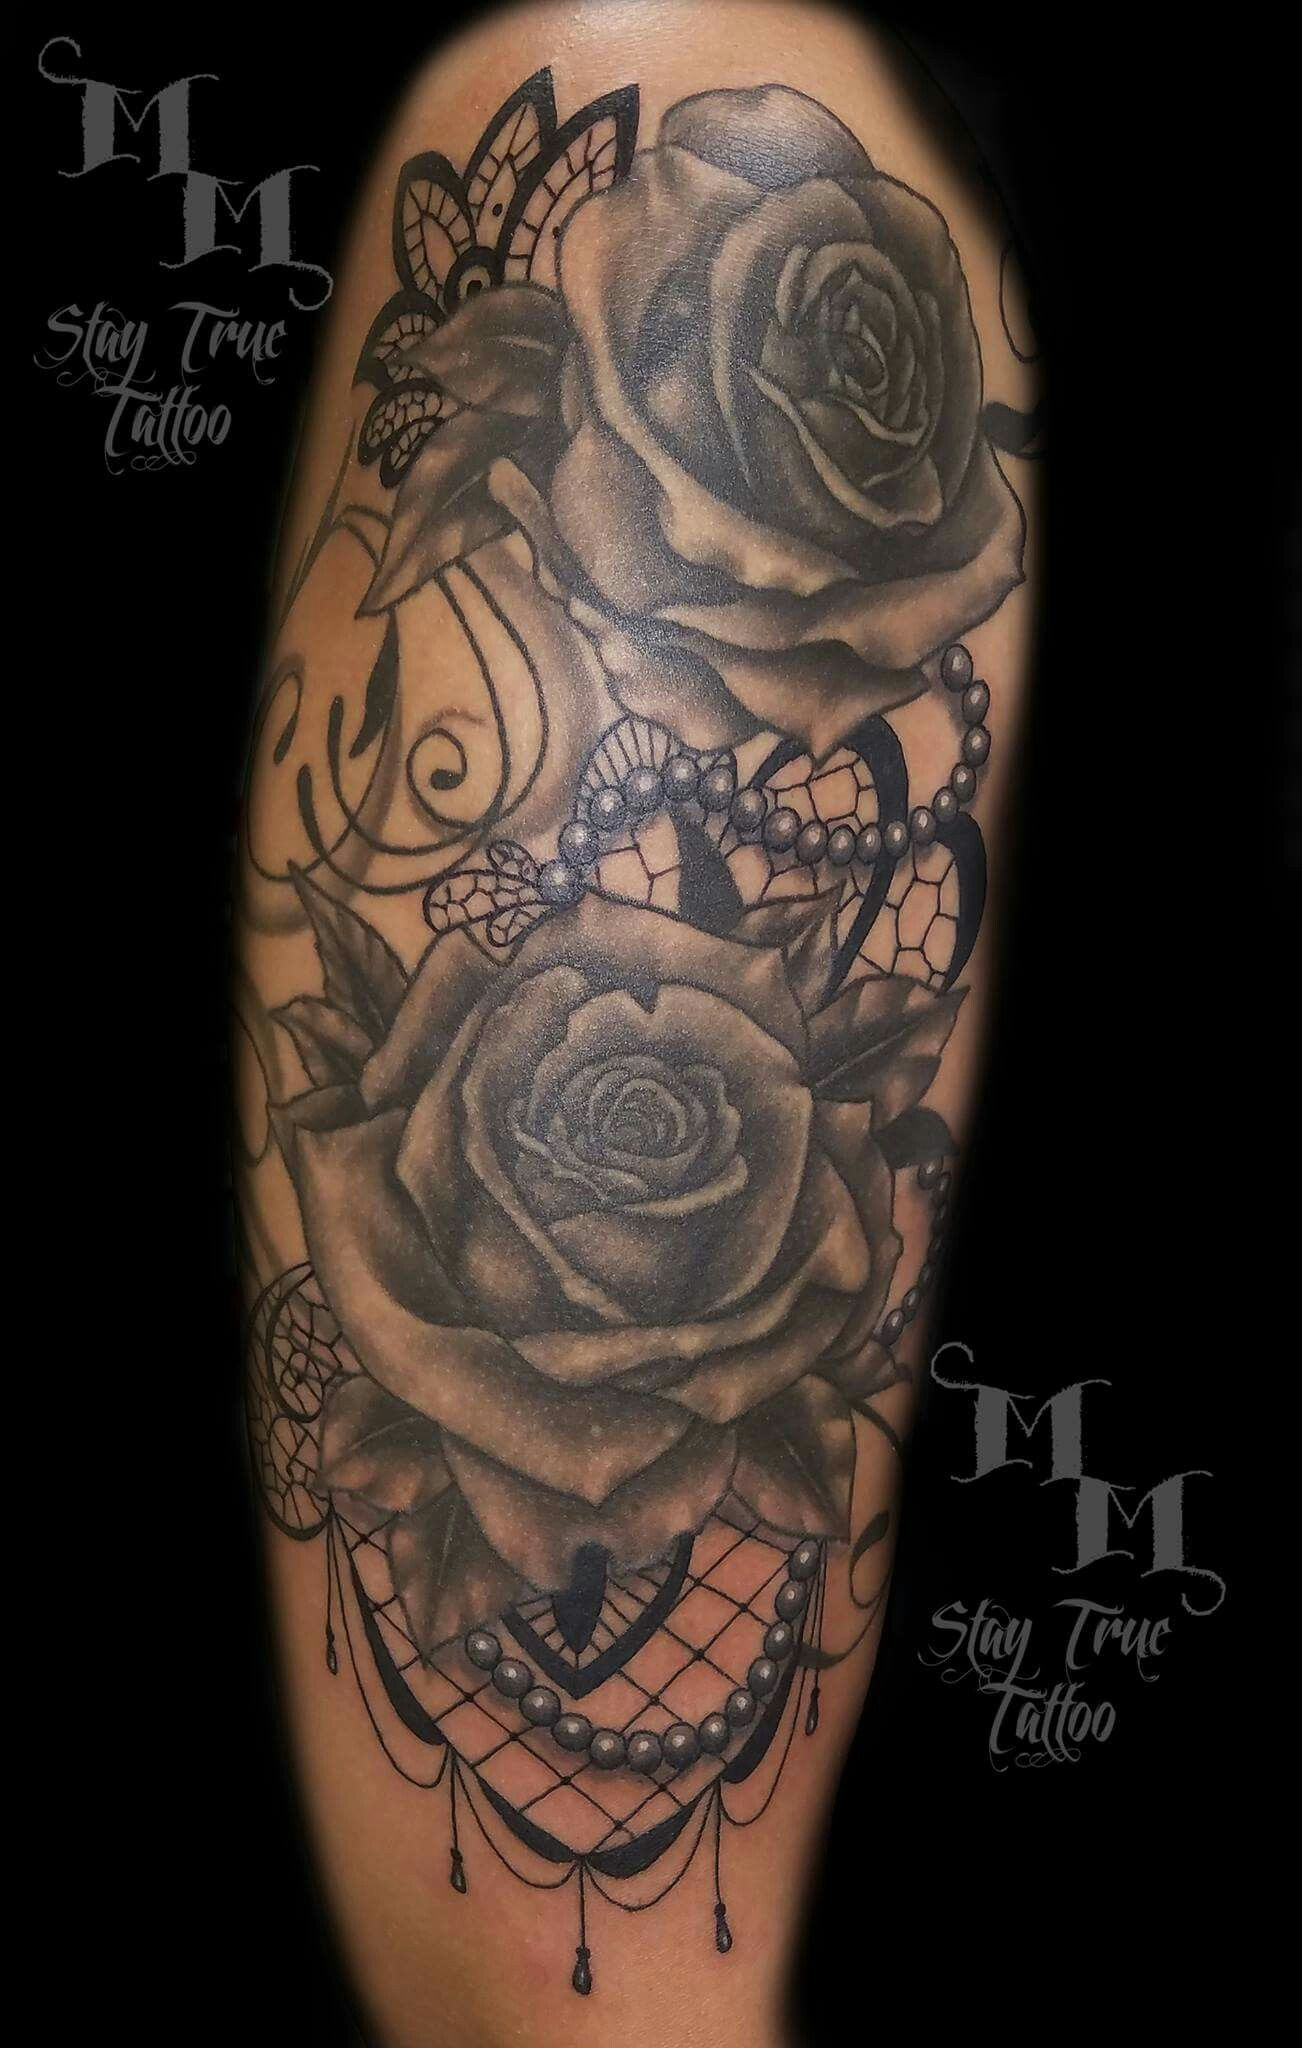 Pearls lace and roses tattoo tattoo ideas pinterest for Lace half sleeve tattoo